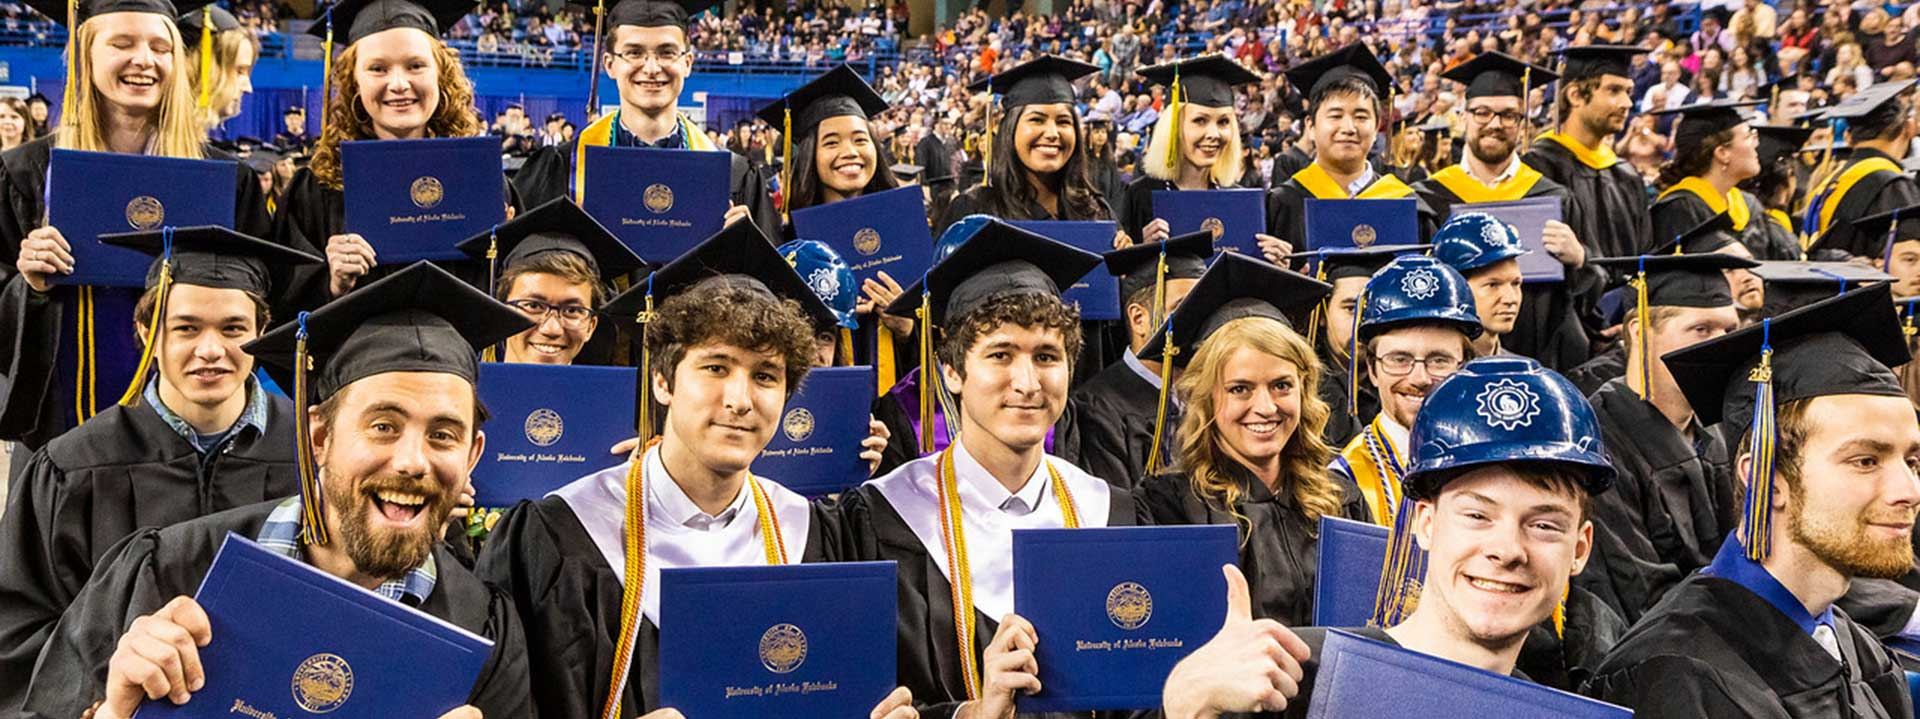 Graduates pose with their diploma covers during the 2019 commencement ceremony at the Carlson Center